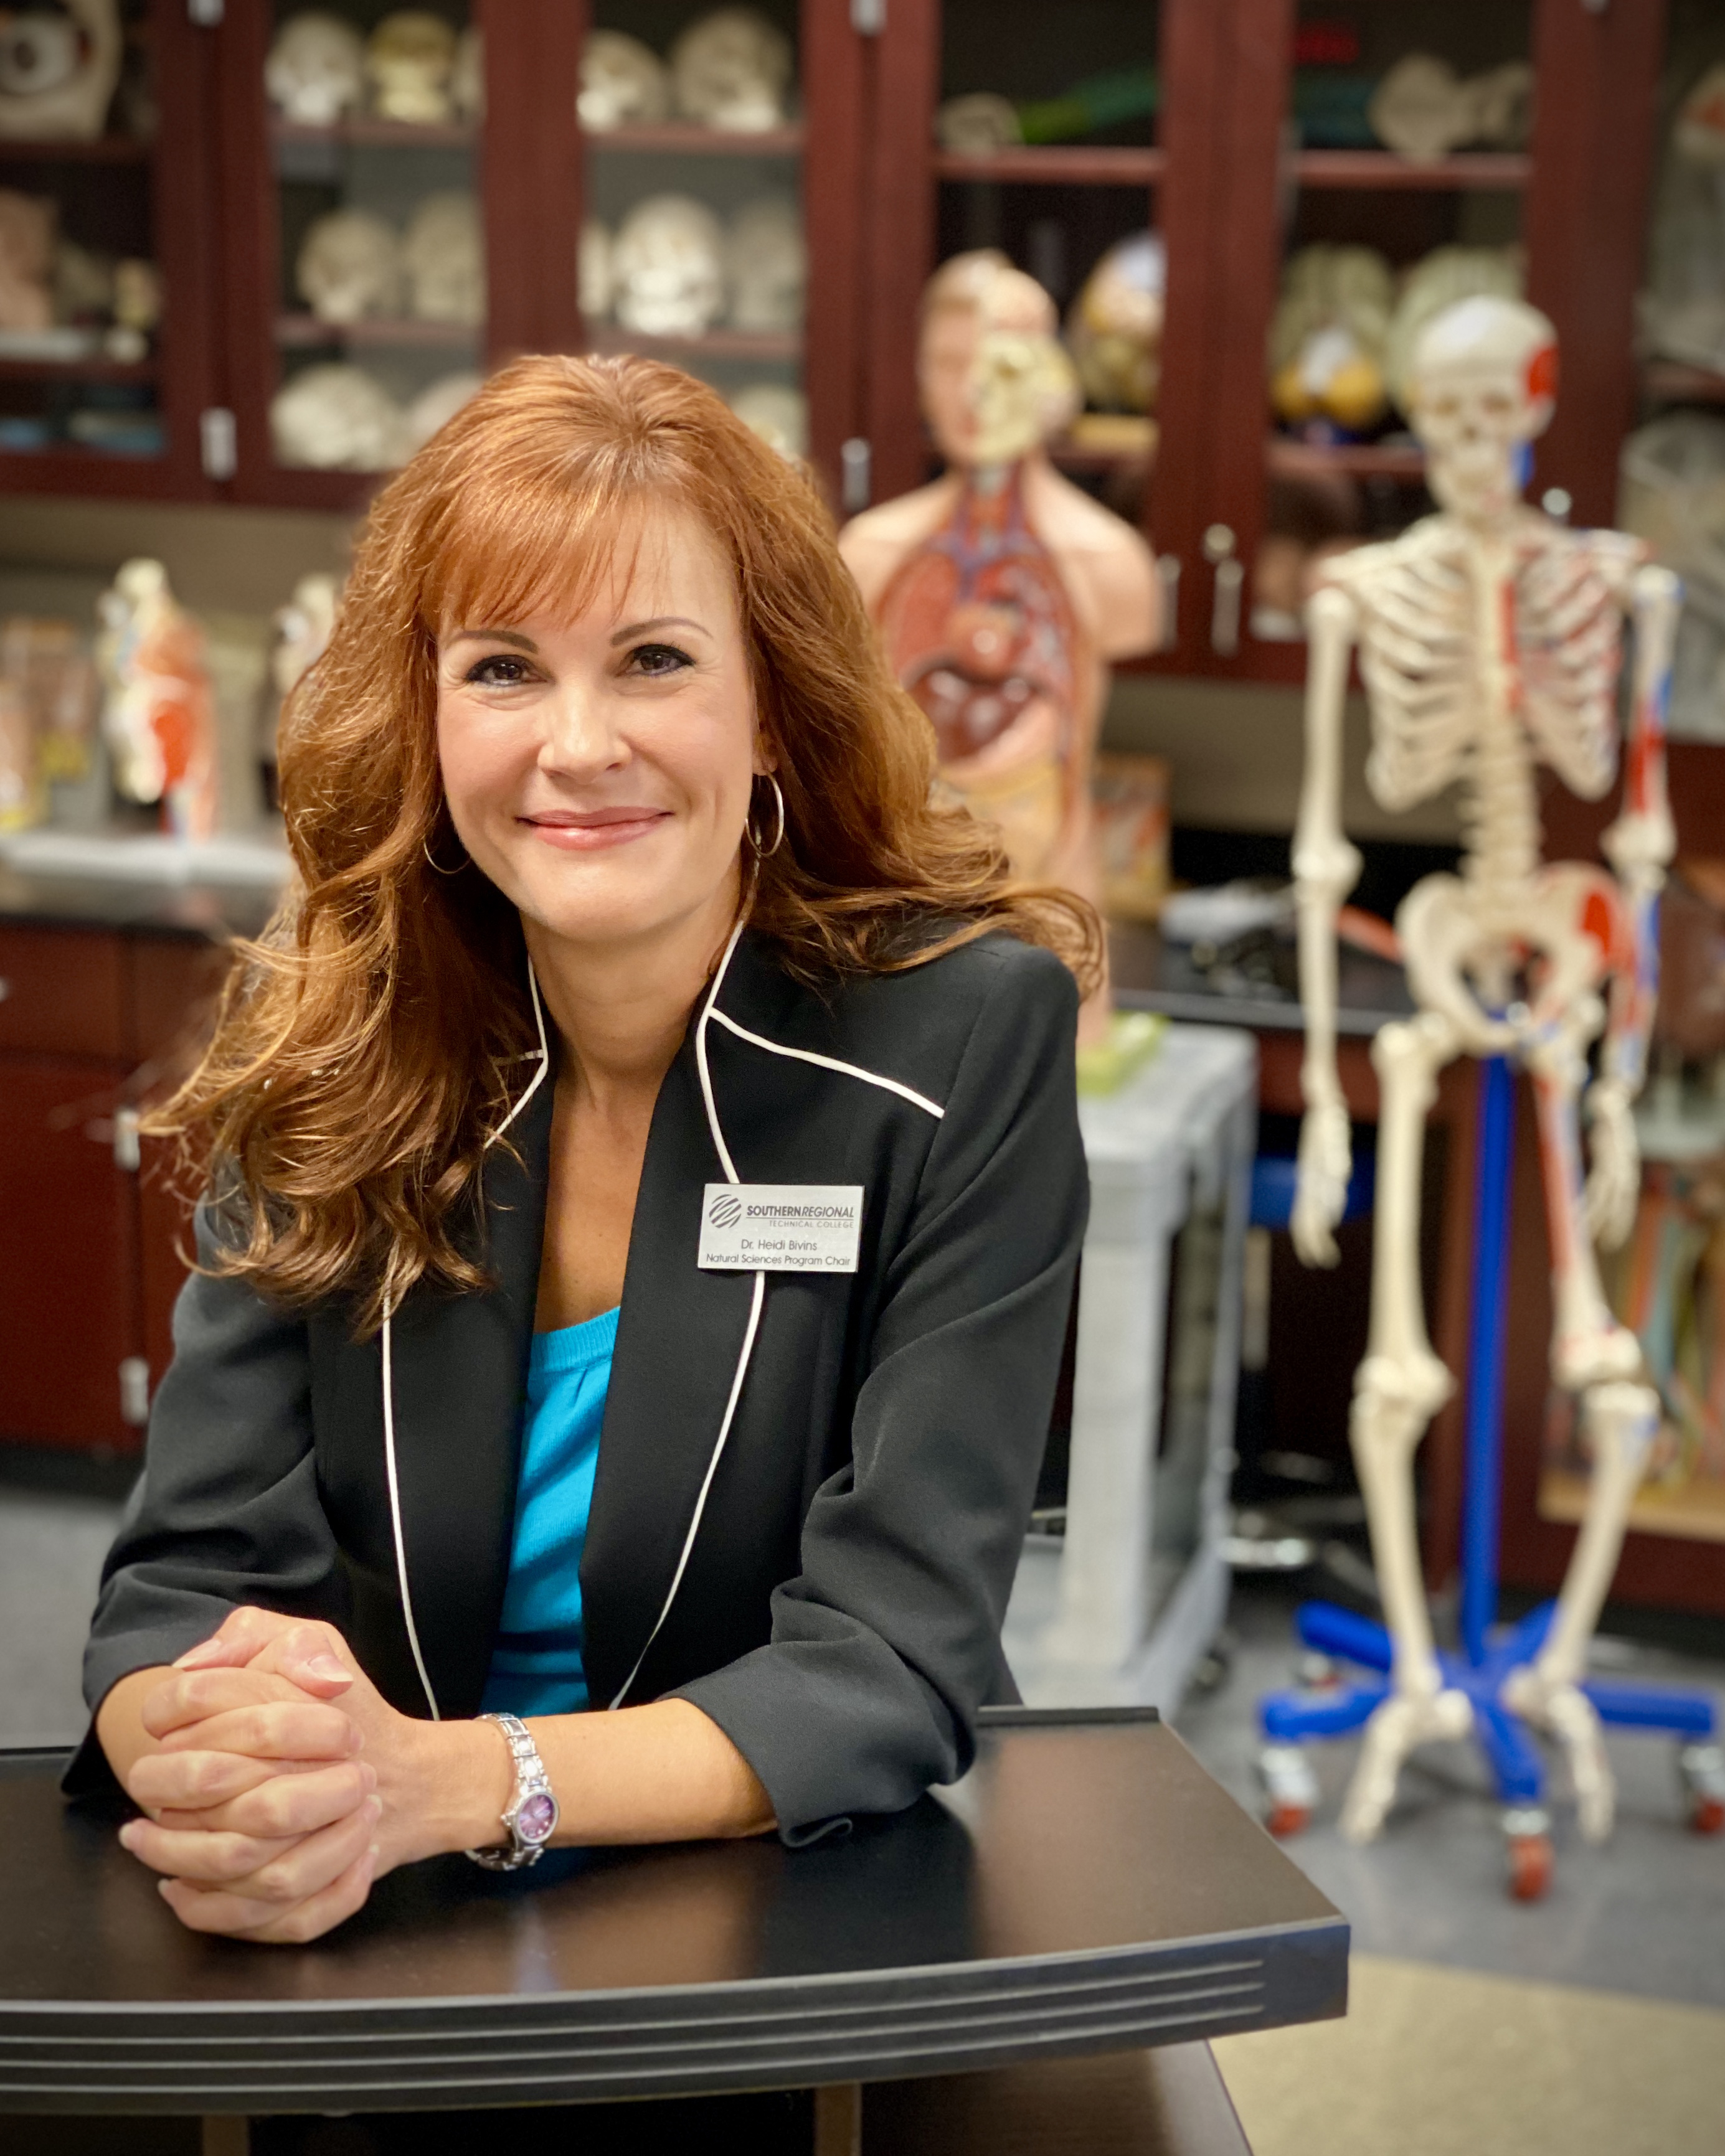 female professor in anatomy lab setting